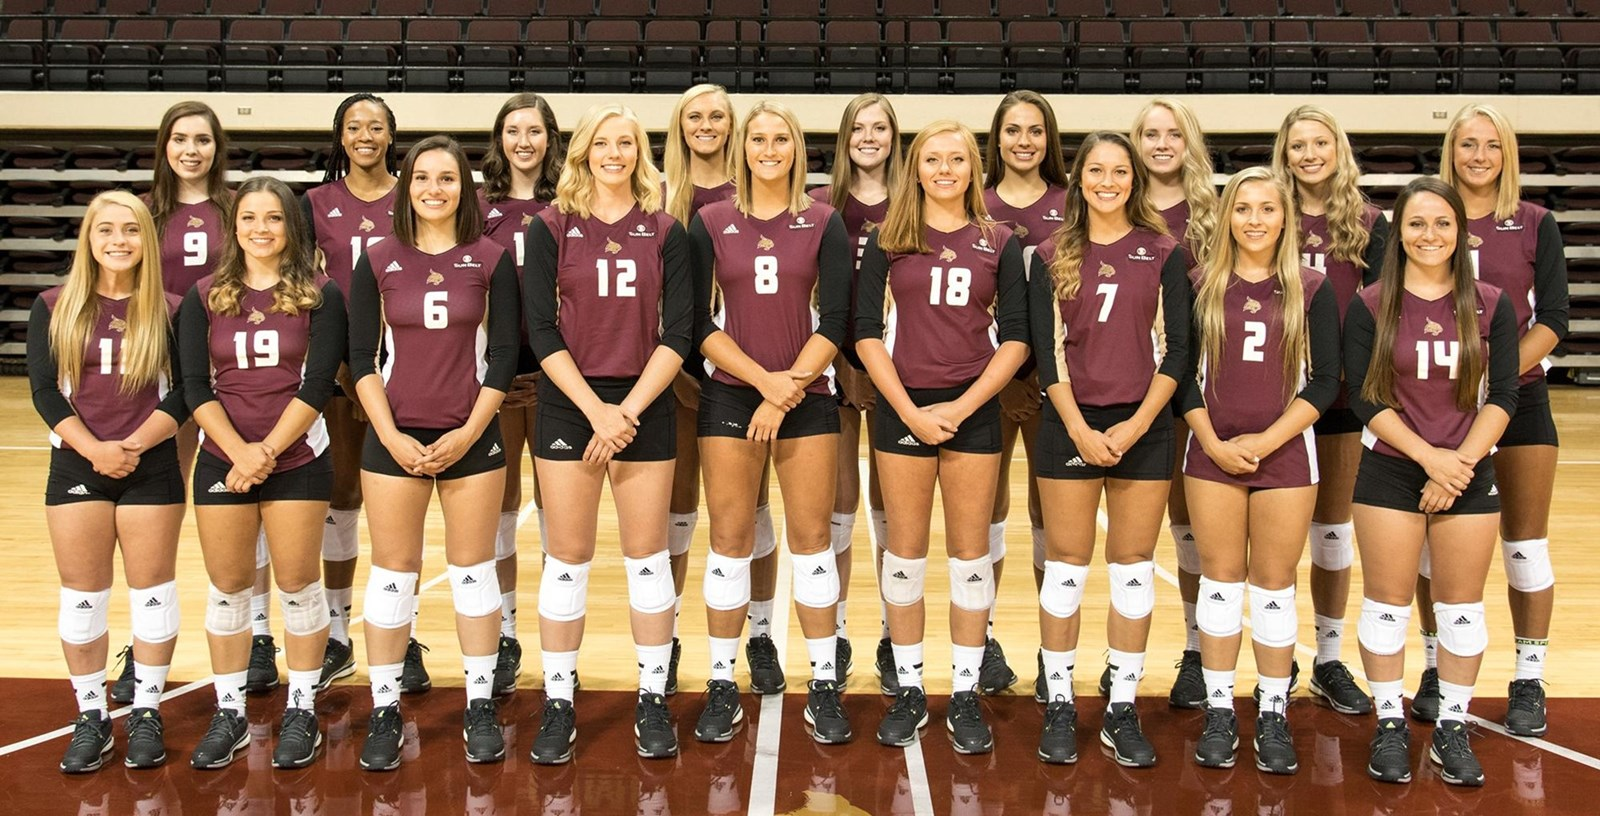 2016 Volleyball Roster Texas State Athletics